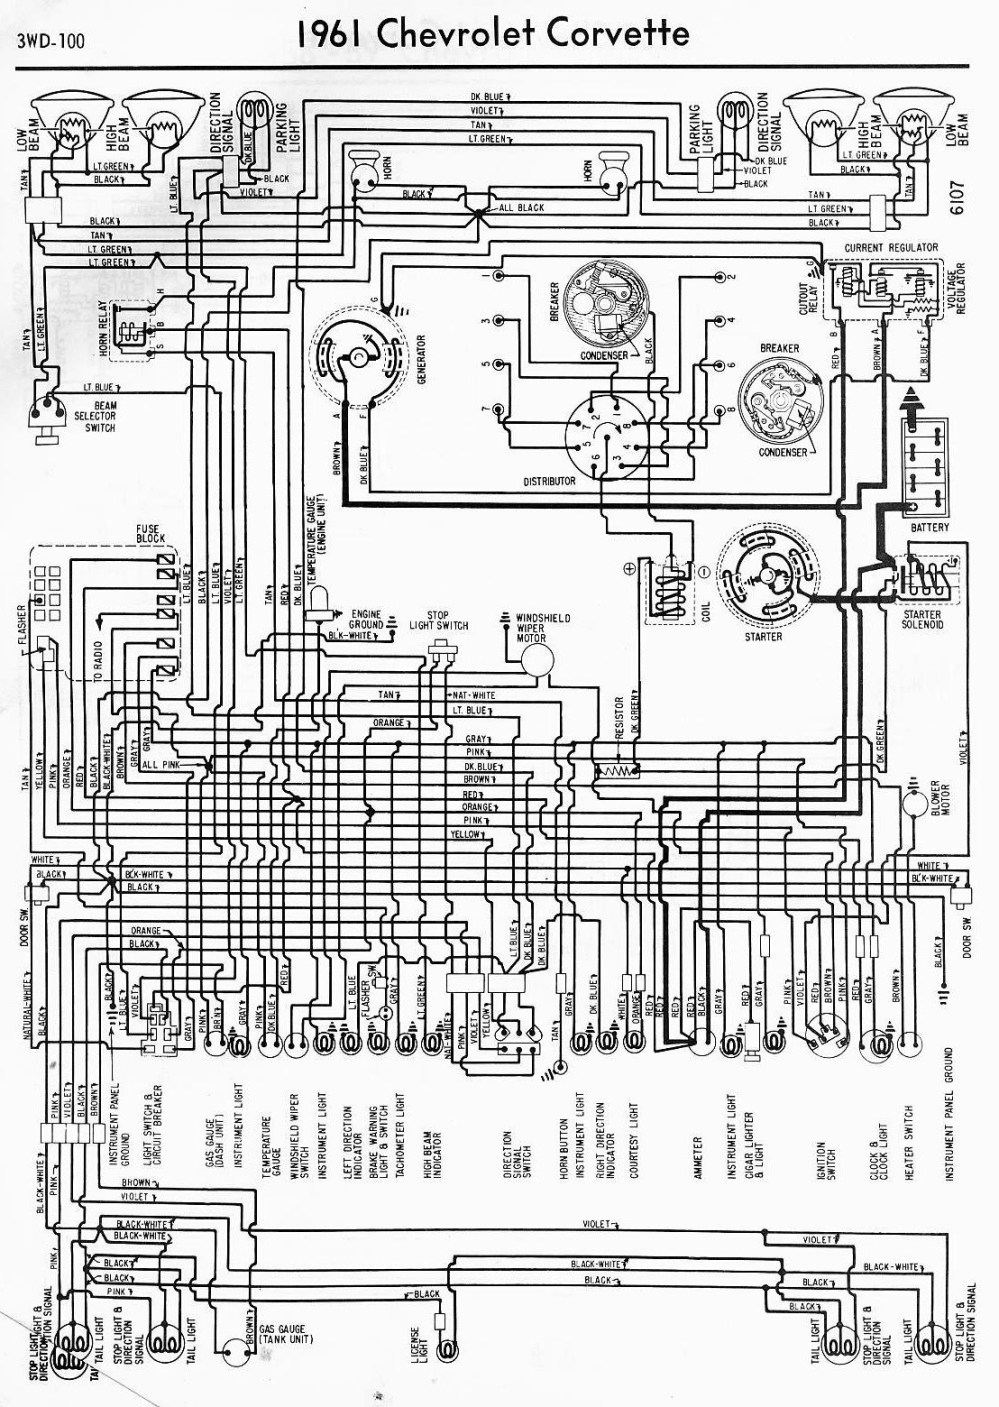 medium resolution of wiring diagram for 1961 chevrolet corvette wiring diagram todaywiring diagrams of 1961 chevrolet corvette diagram data